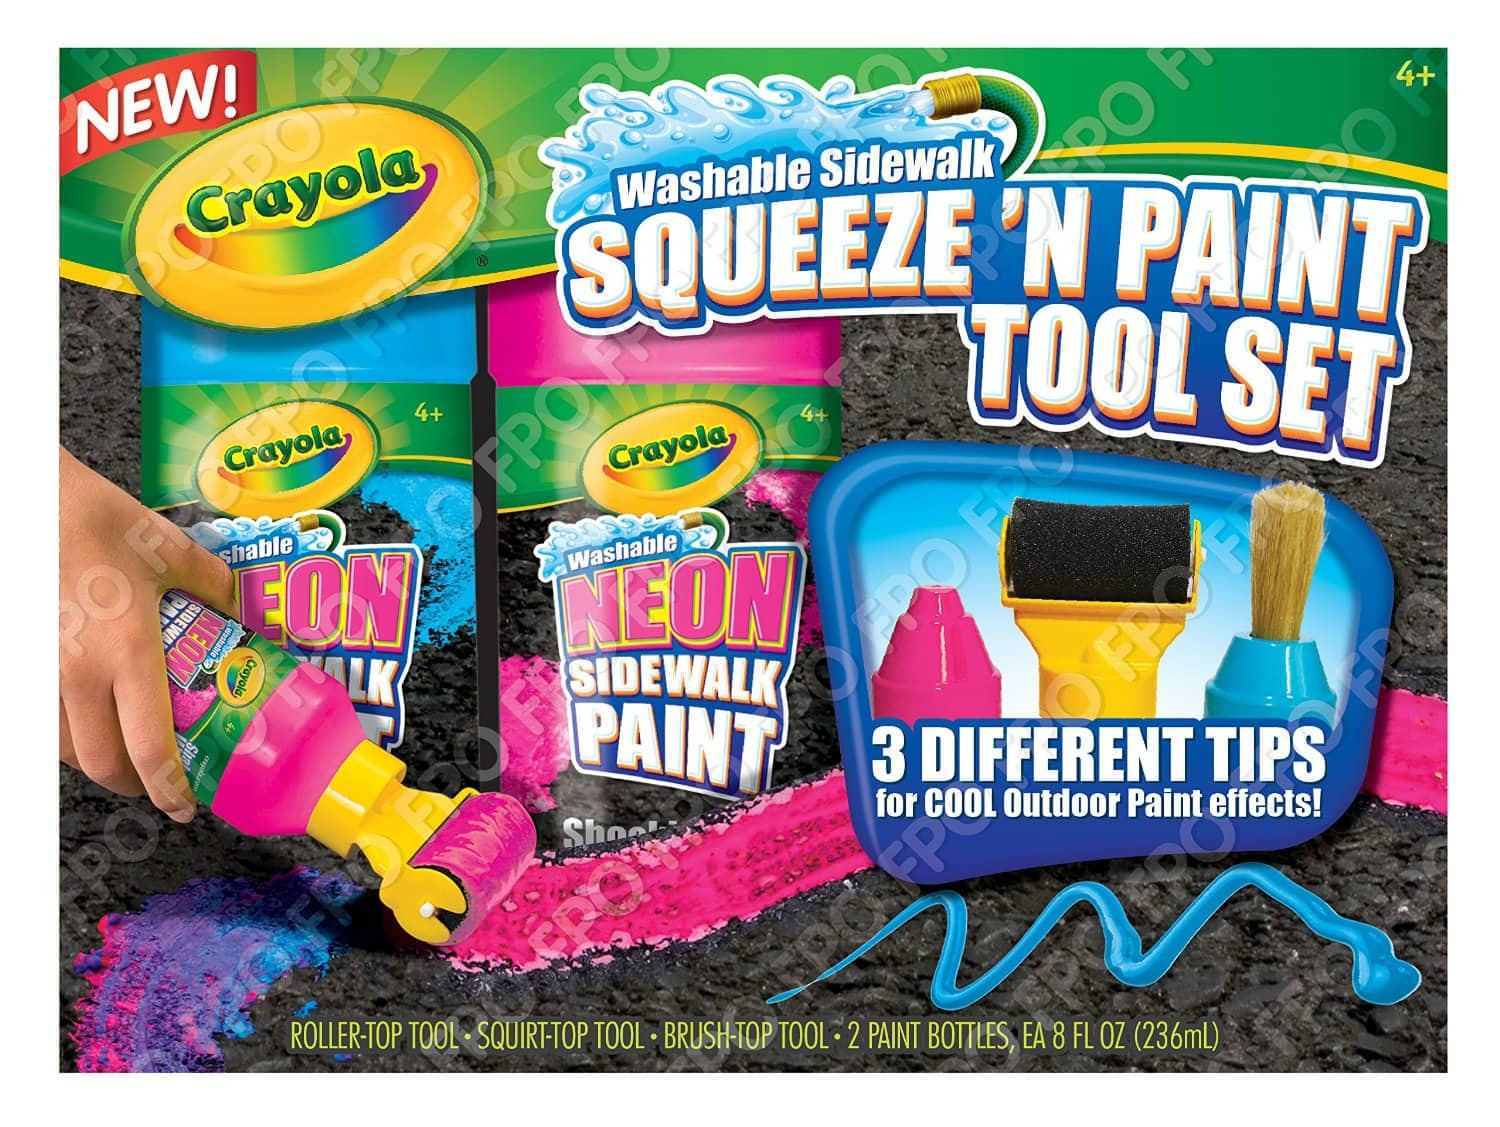 40% off Crayola items at Amazon